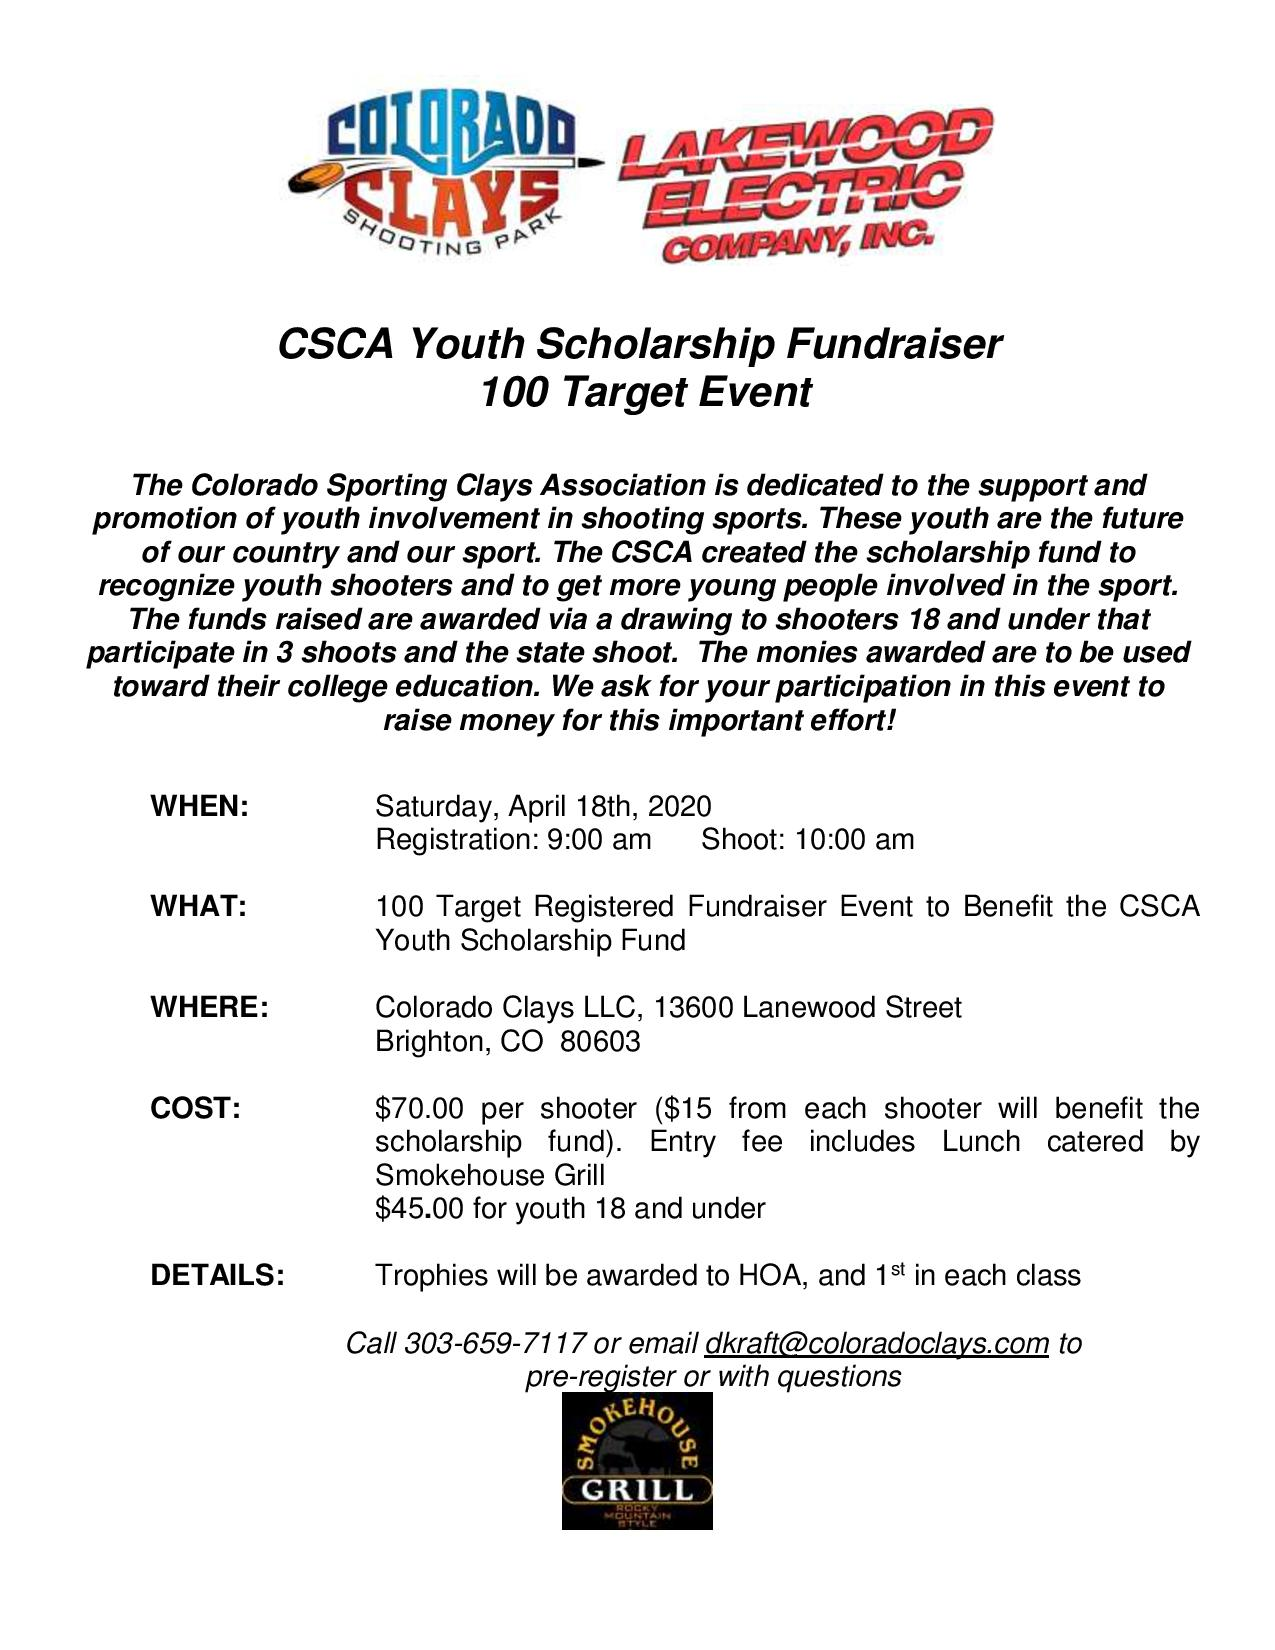 Cancelled - CSCA Youth Scholarship Fundraiser Shoot